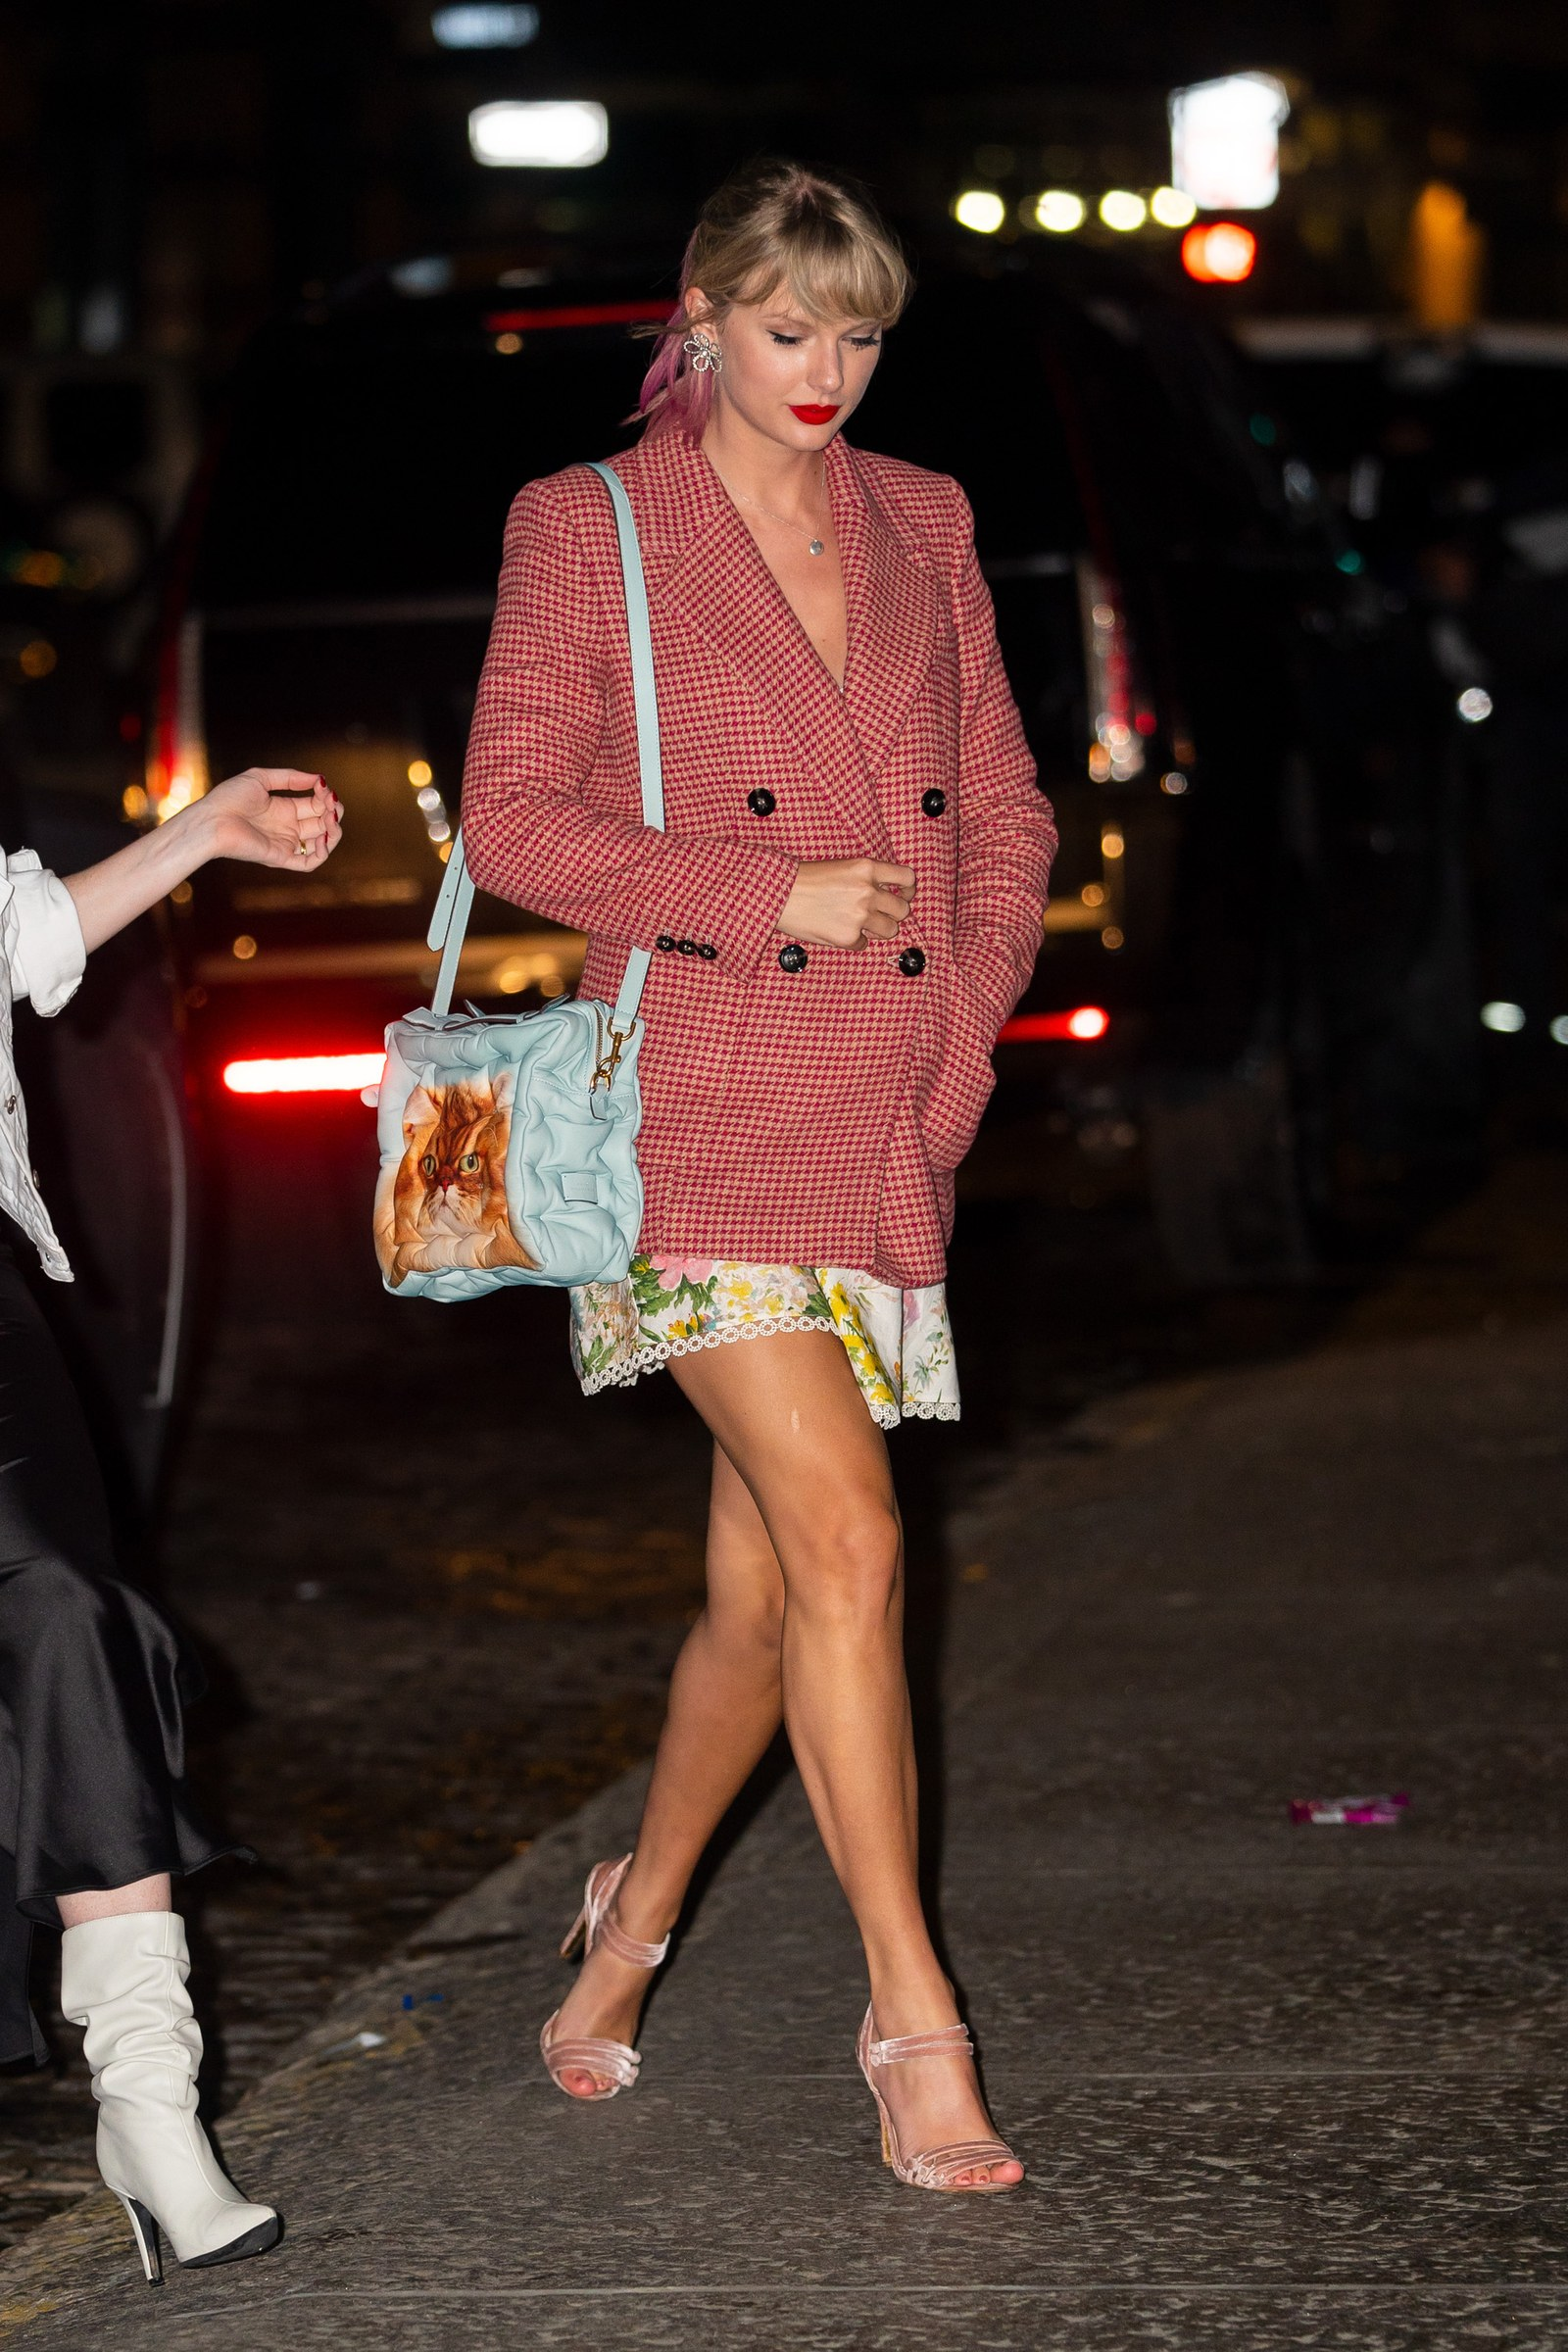 NEW YORK NEW YORK APRIL 22 Taylor Swift is seen in Tribeca on April 22 2019 in New York City.